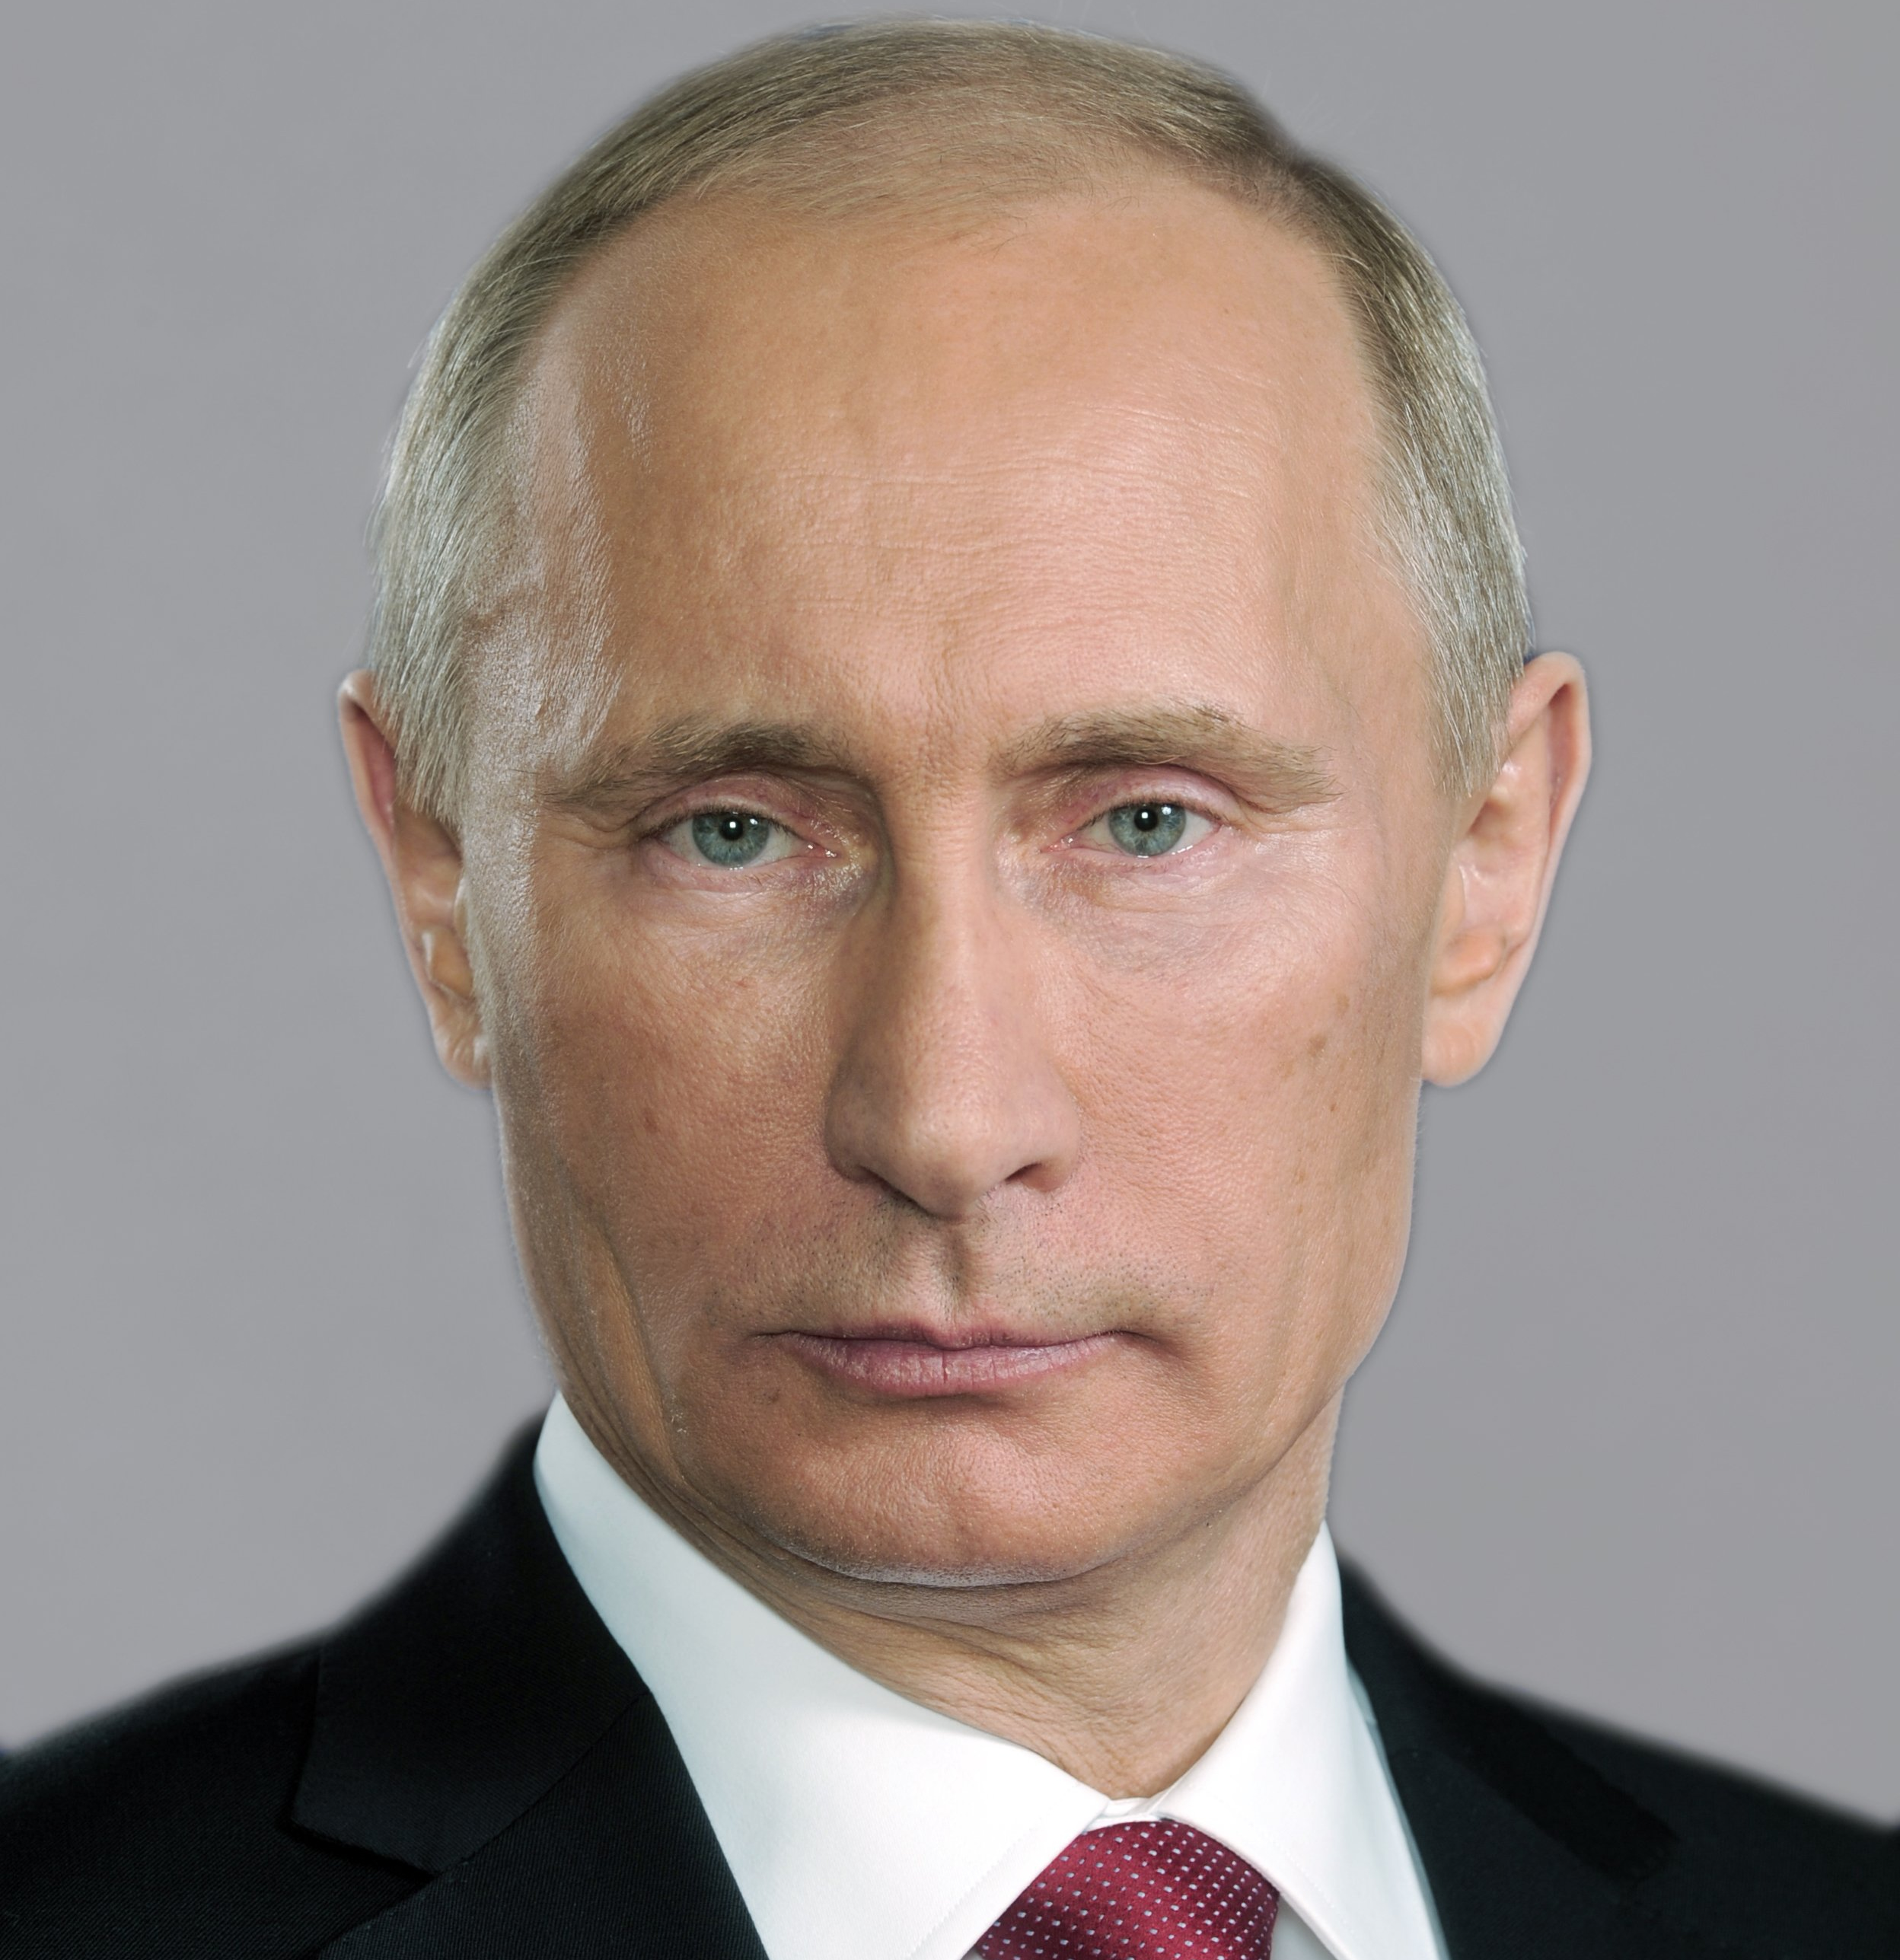 Vladimir Putin Rise Of A Strongman United Church Of God